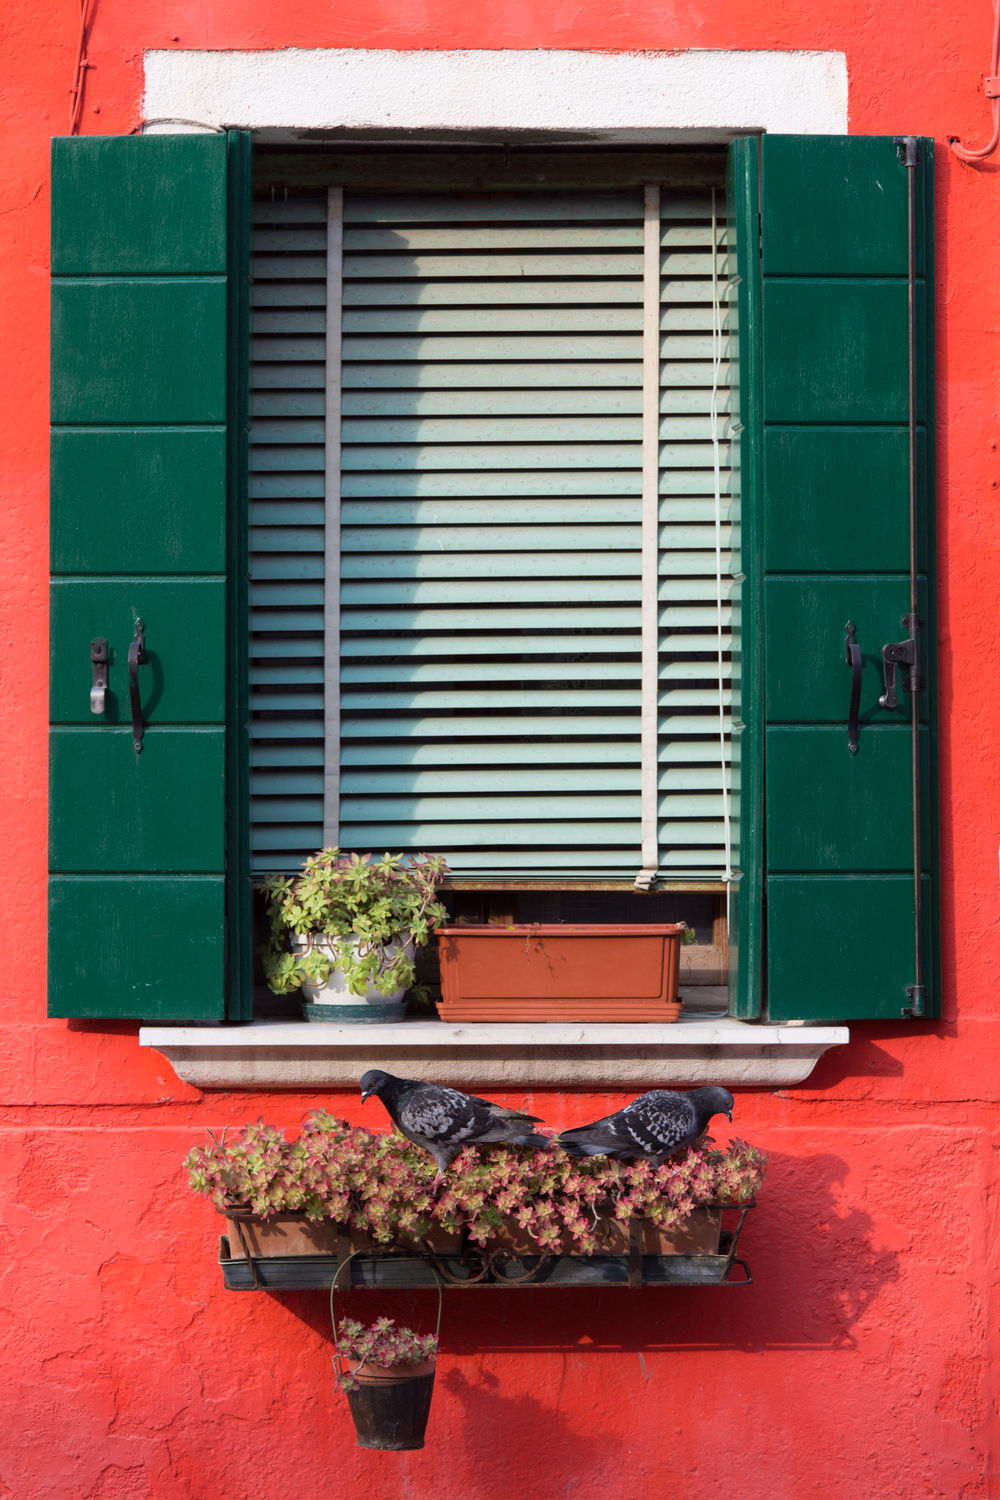 Window on the Island of Burano - 6d - 70-200 f4 @ 165mm/ f7.1/ 1/125 sec/ iso100